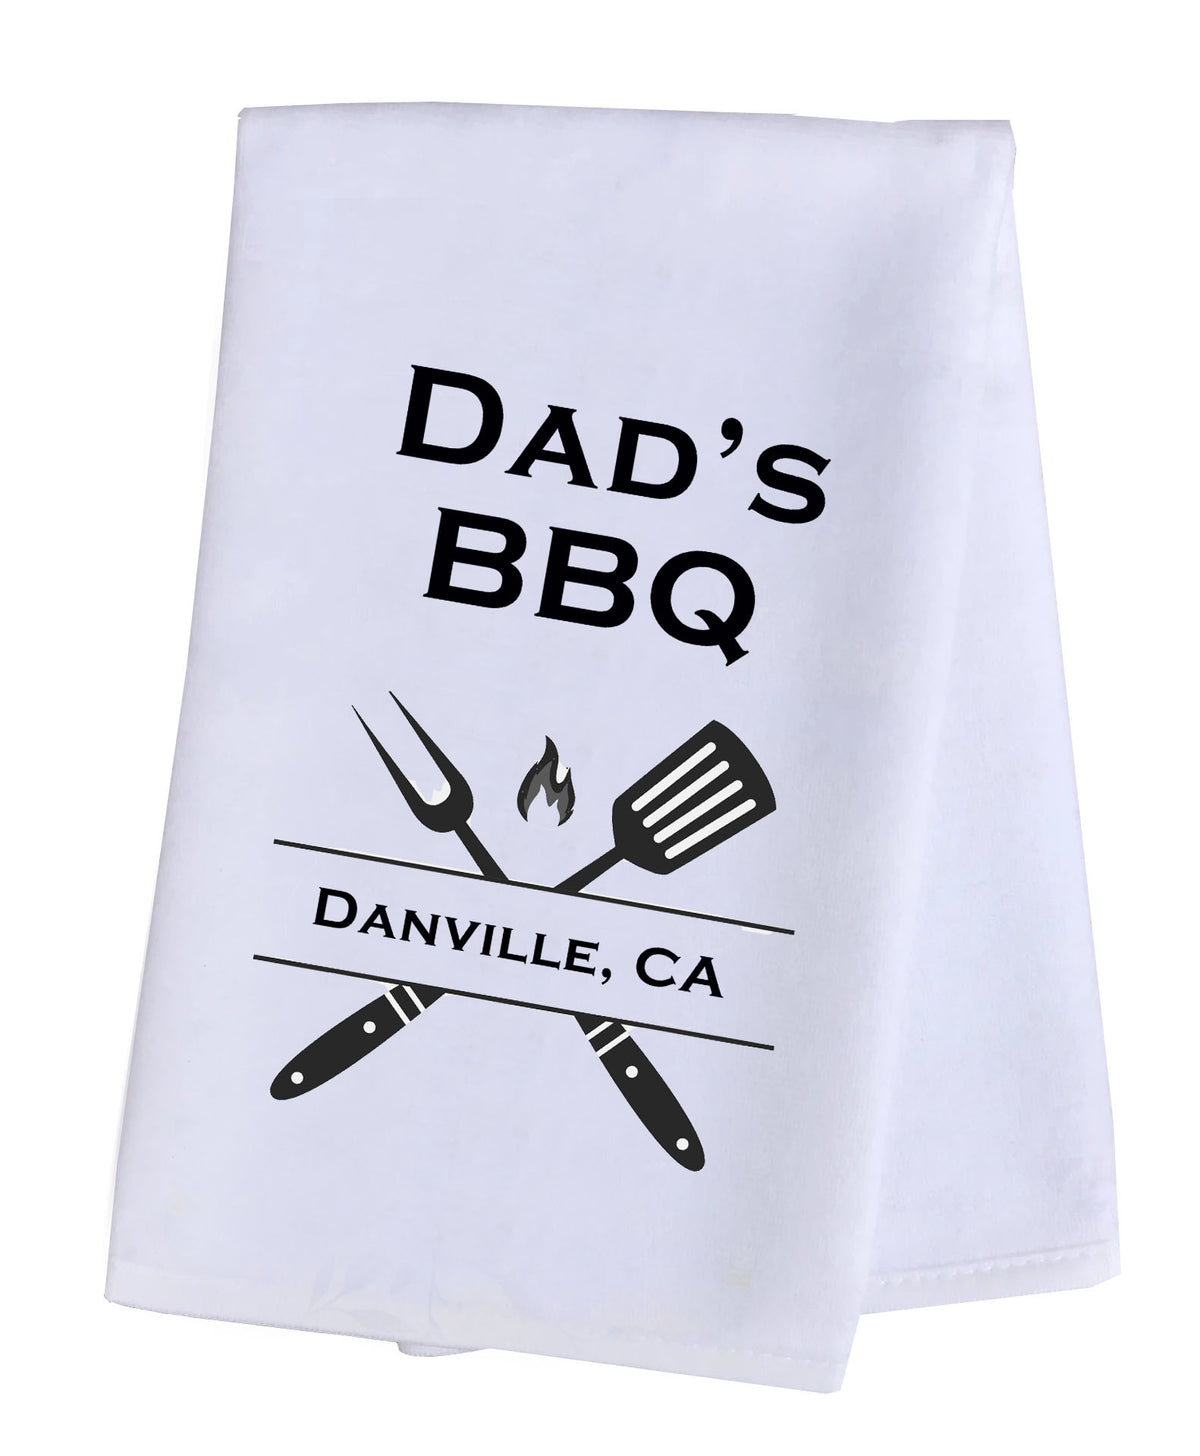 Hand Towel Plush Personalized - Dad's BBQ with Your Choice of Location